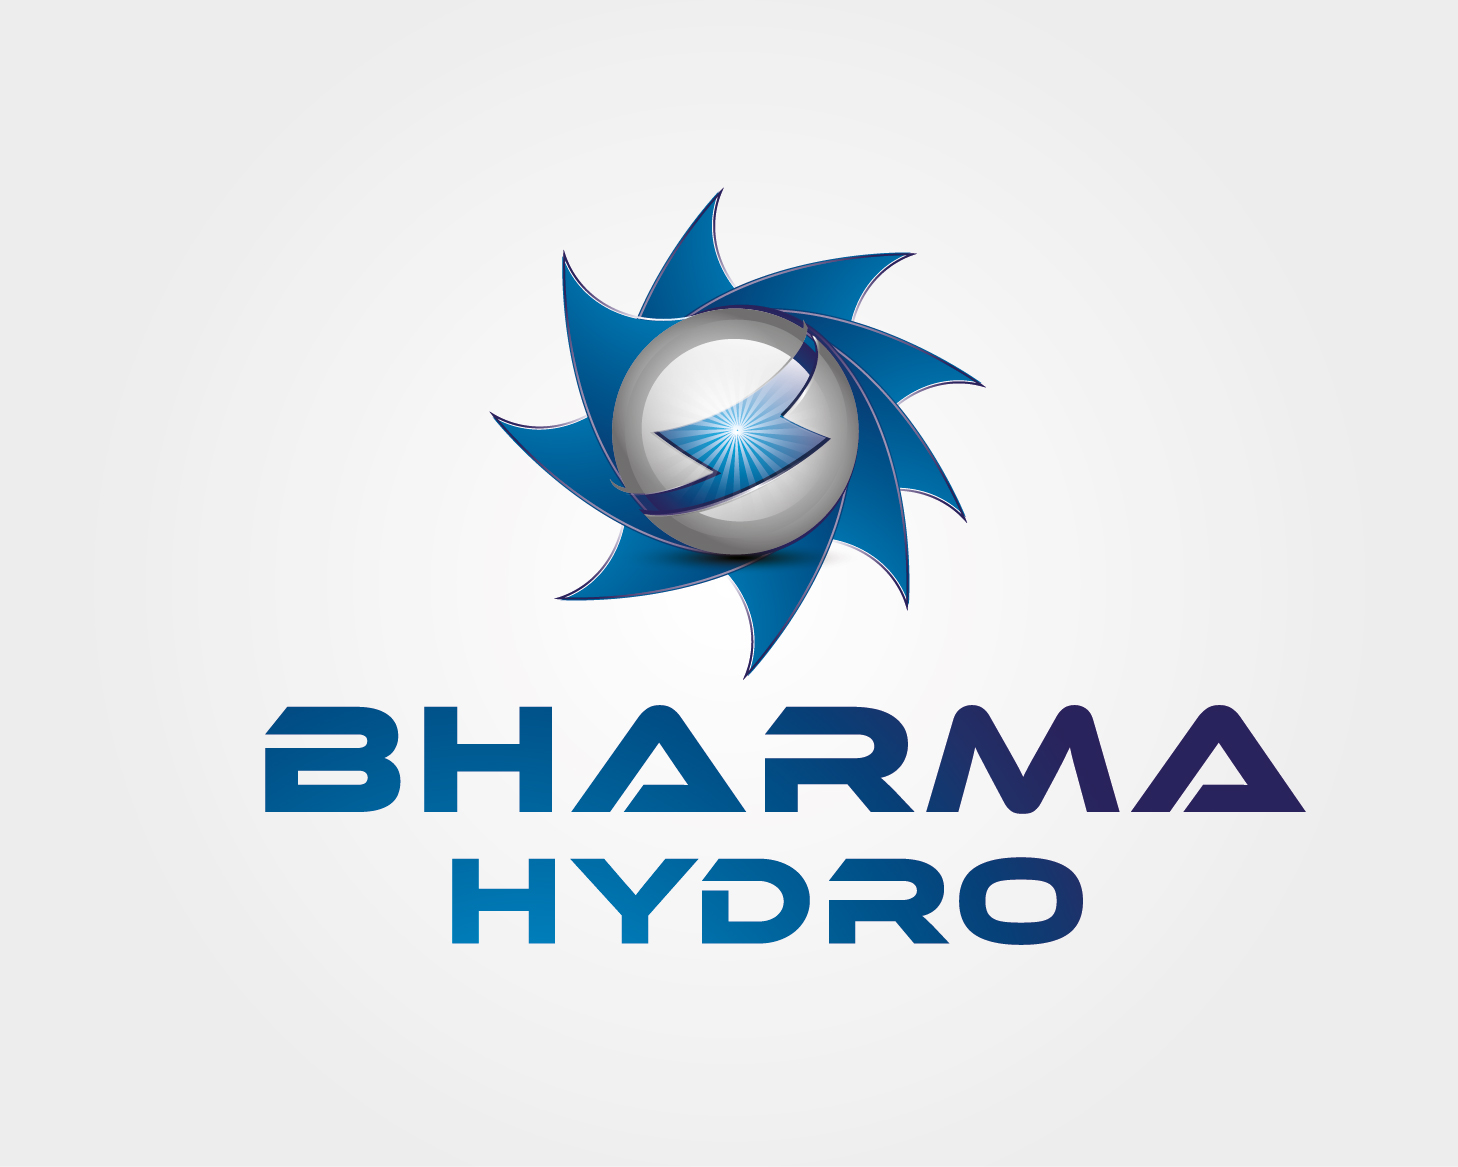 Logo Design by VENTSISLAV KOVACHEV - Entry No. 28 in the Logo Design Contest Creative Logo Design for Bharma Hydro.